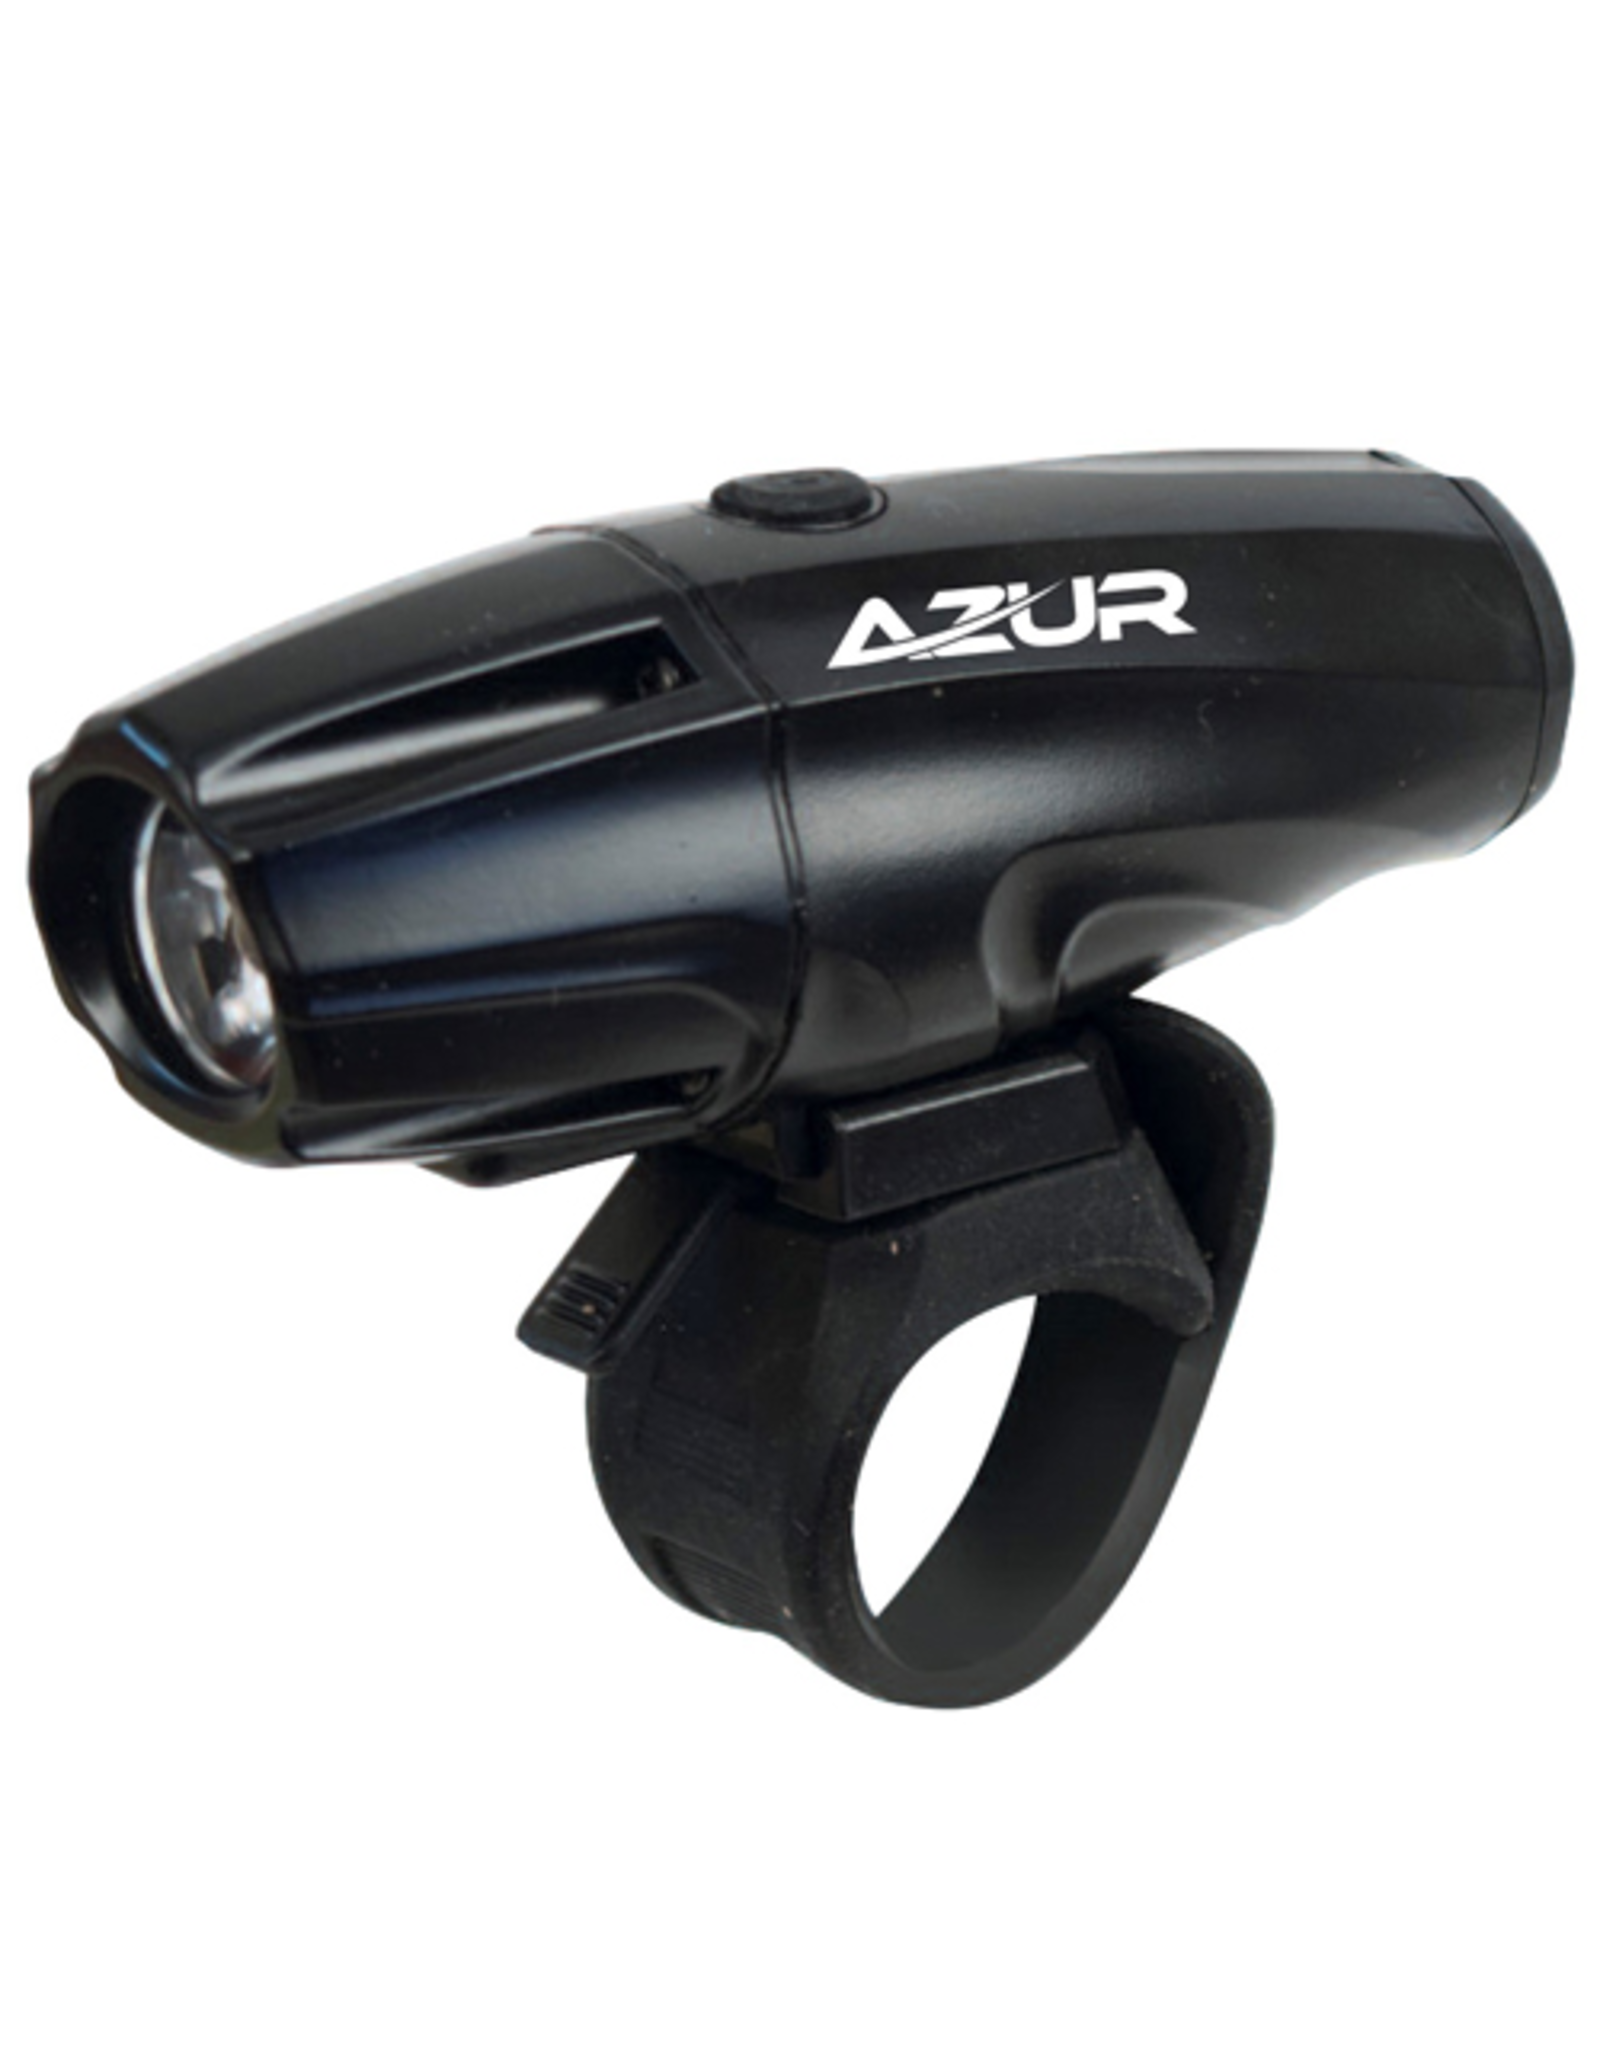 AZUR LIGHT HEAD LIGHT AZUR COVE 1000 LUMENS USB RECHARGABLE